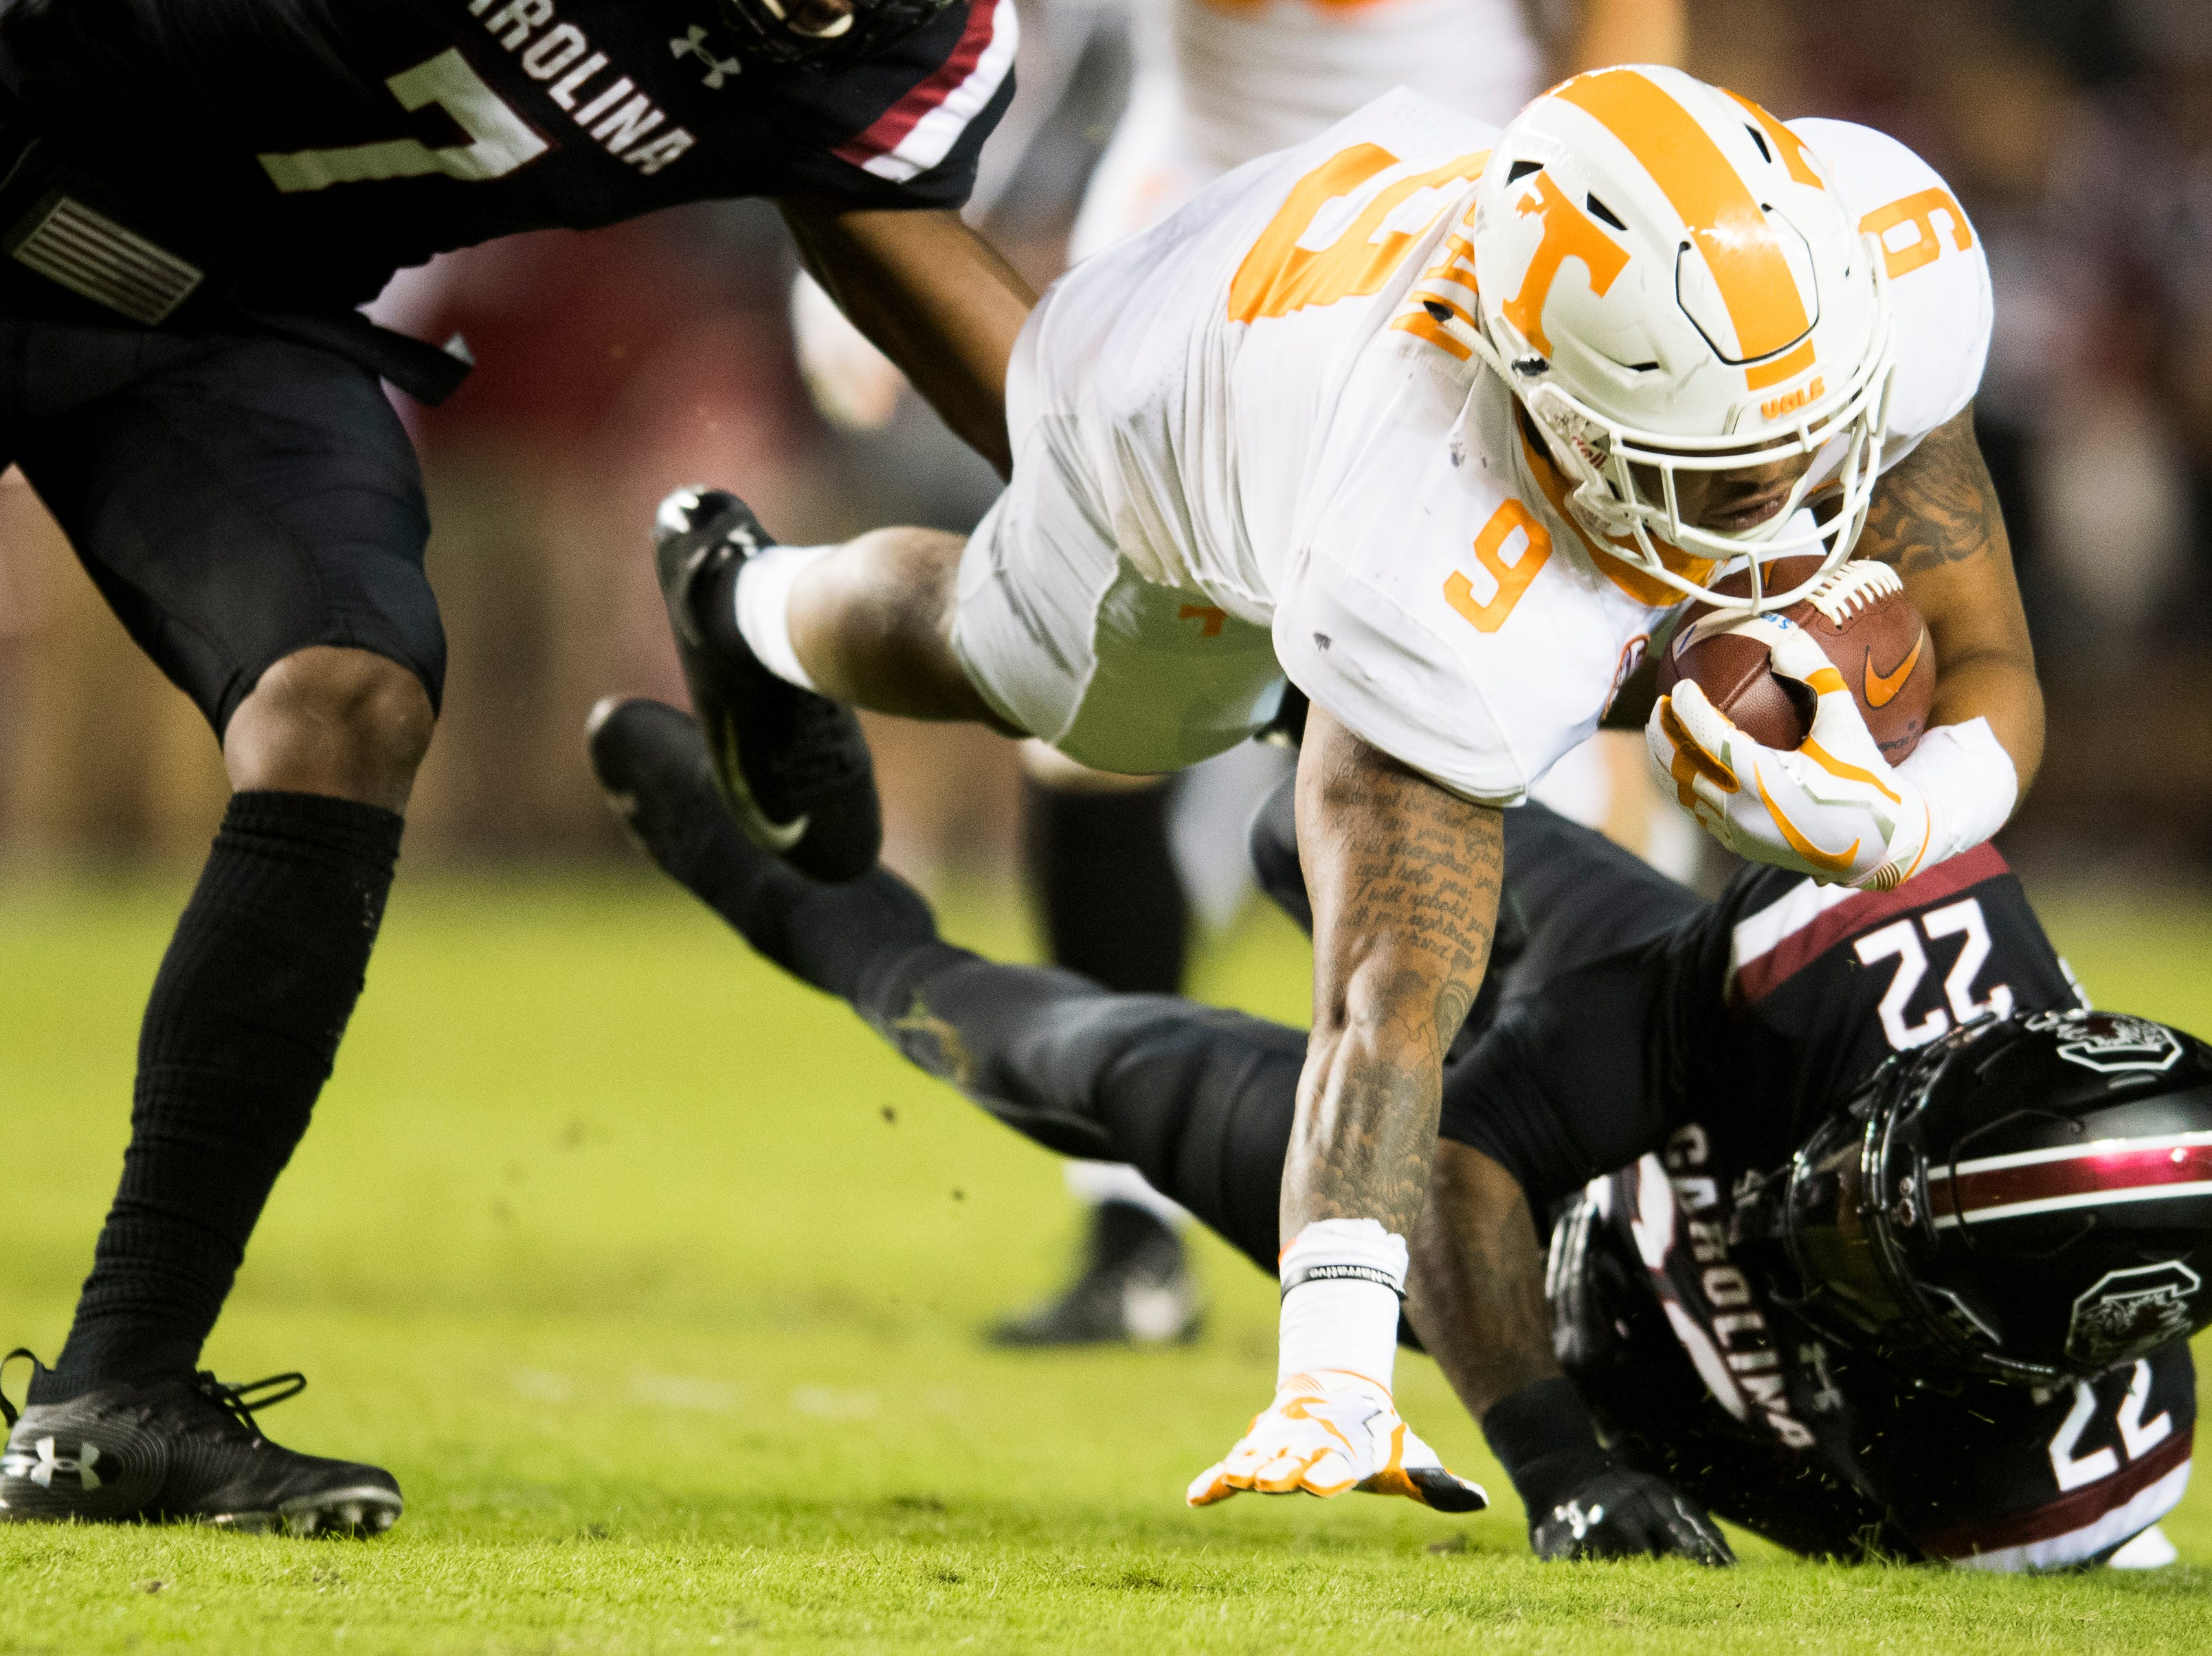 Tennessee running back Tim Jordan (9) leaps over South Carolina defensive back Steven Montac (22) for extra yardage during a game between Tennessee and South Carolina at Williams-Brice Stadium in Columbia, South Carolina on Saturday, October 27, 2018.